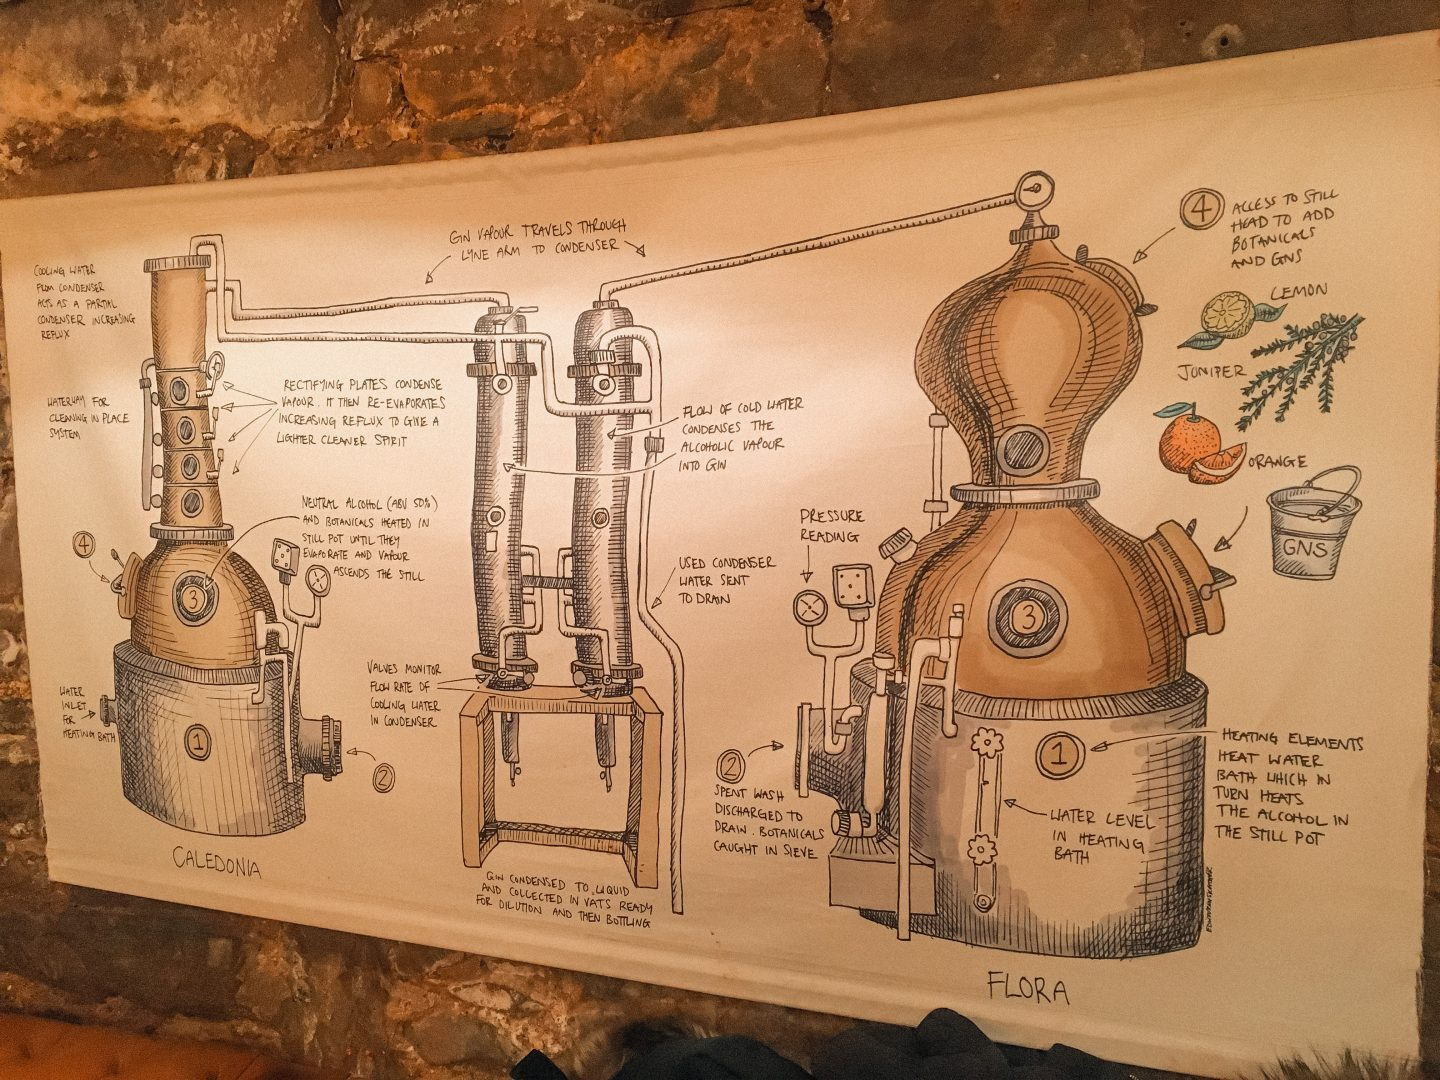 Gin discovery tour at Edinburgh gin distillery in Edinburgh